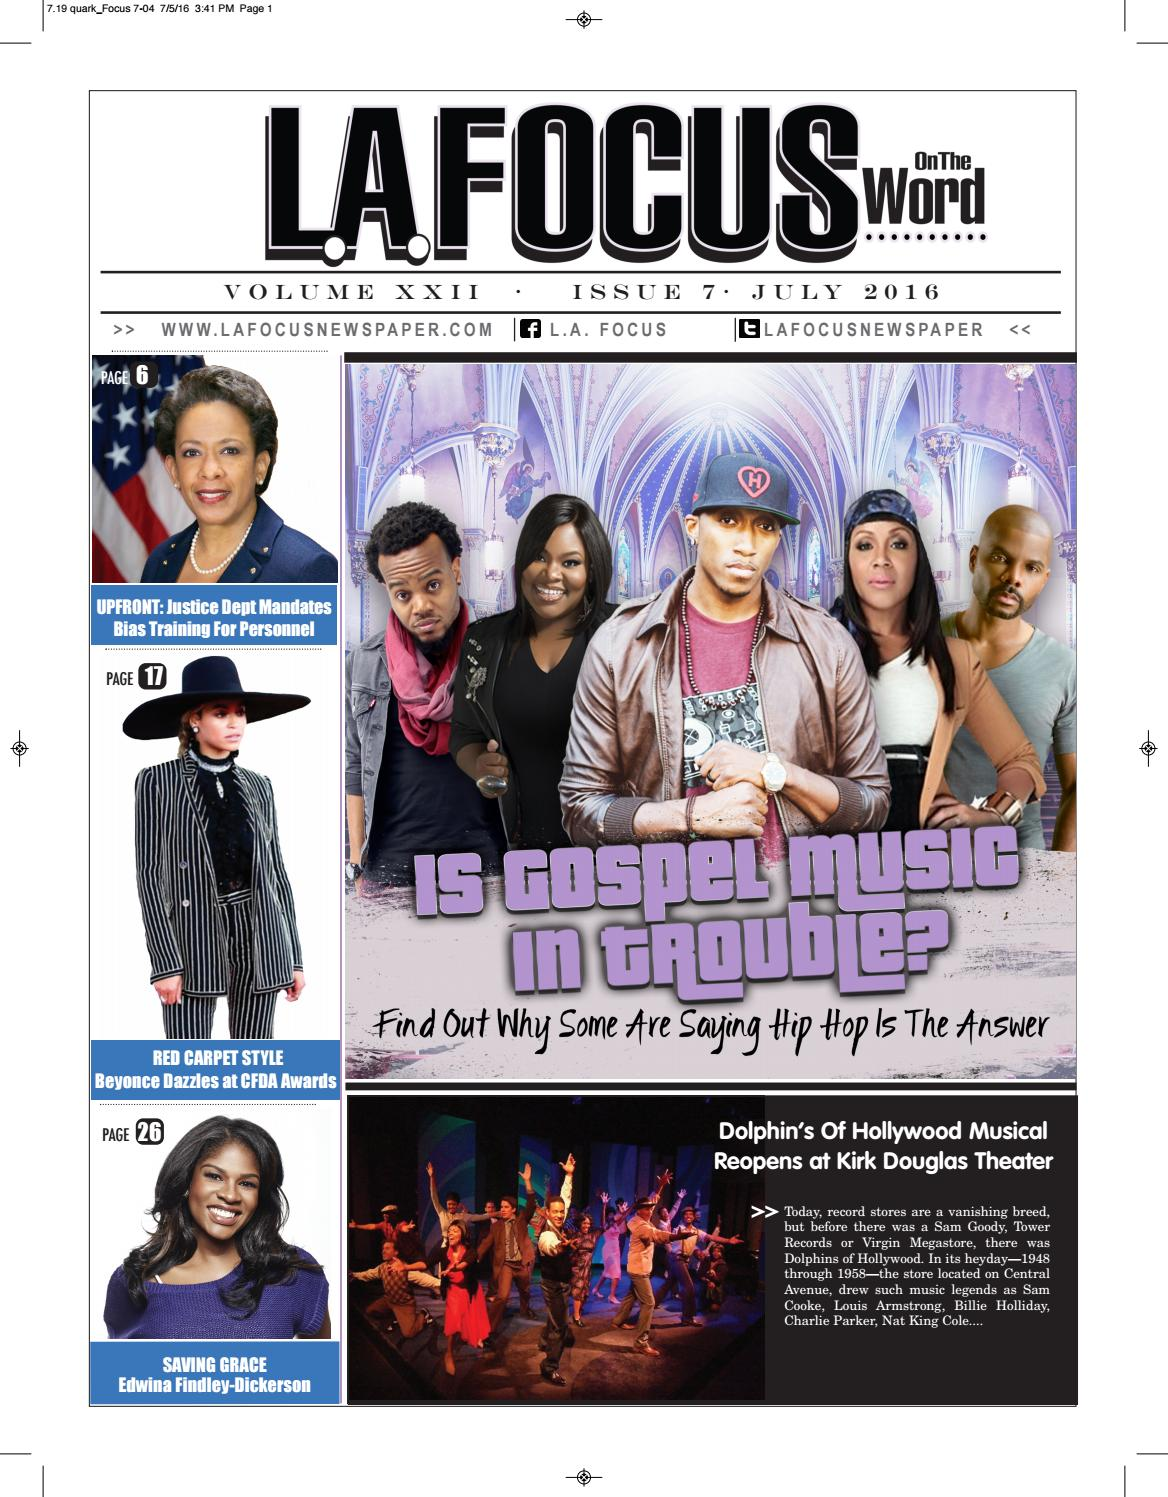 L A  Focus On The Word July 2016 Issue by LA Focus Newspaper